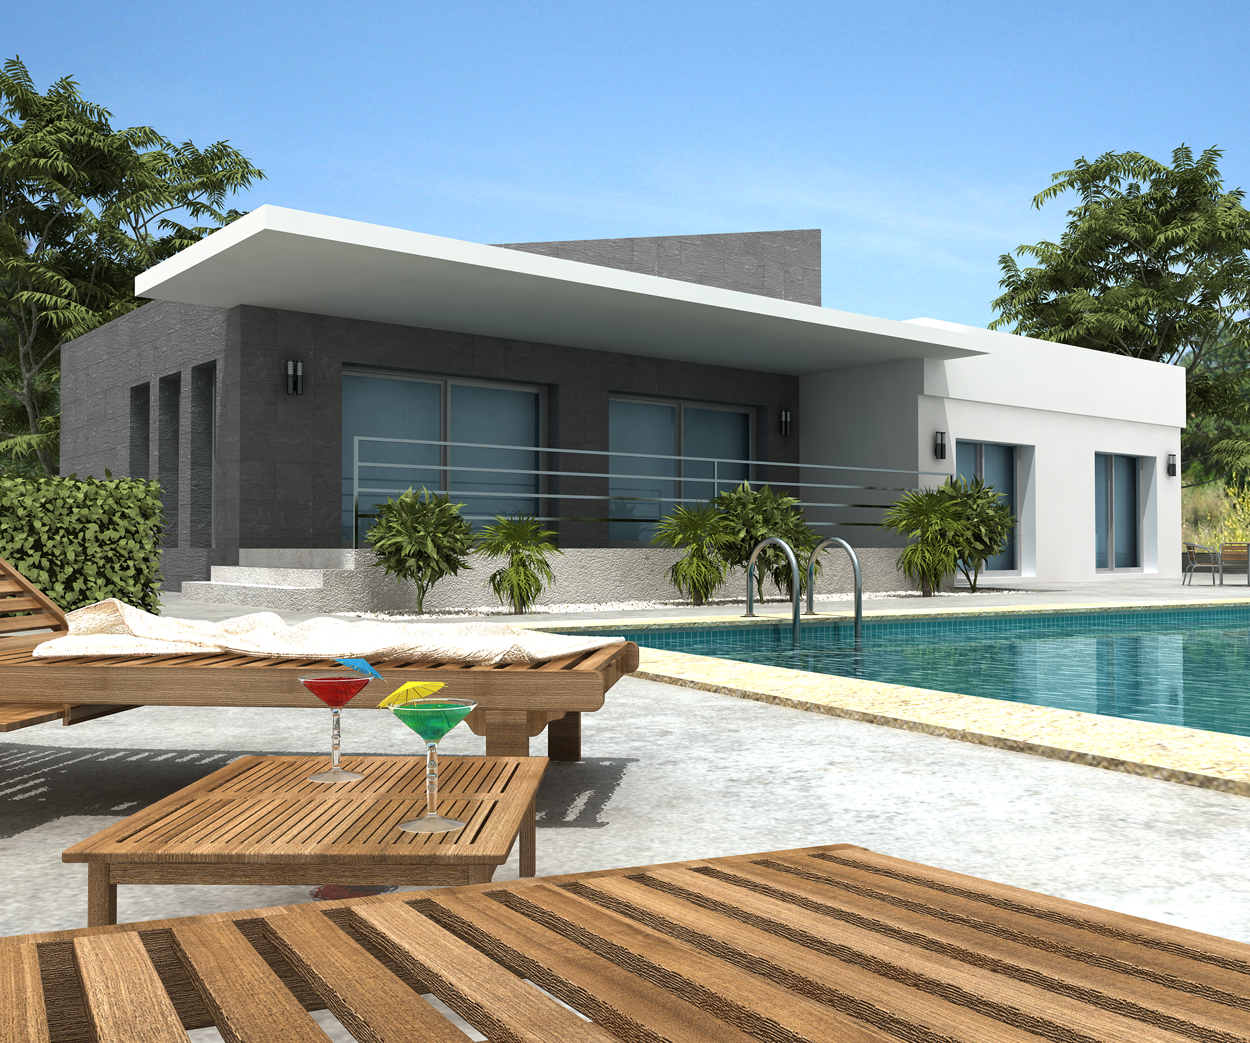 New home designs latest modern villa designs for Exterieur villa design